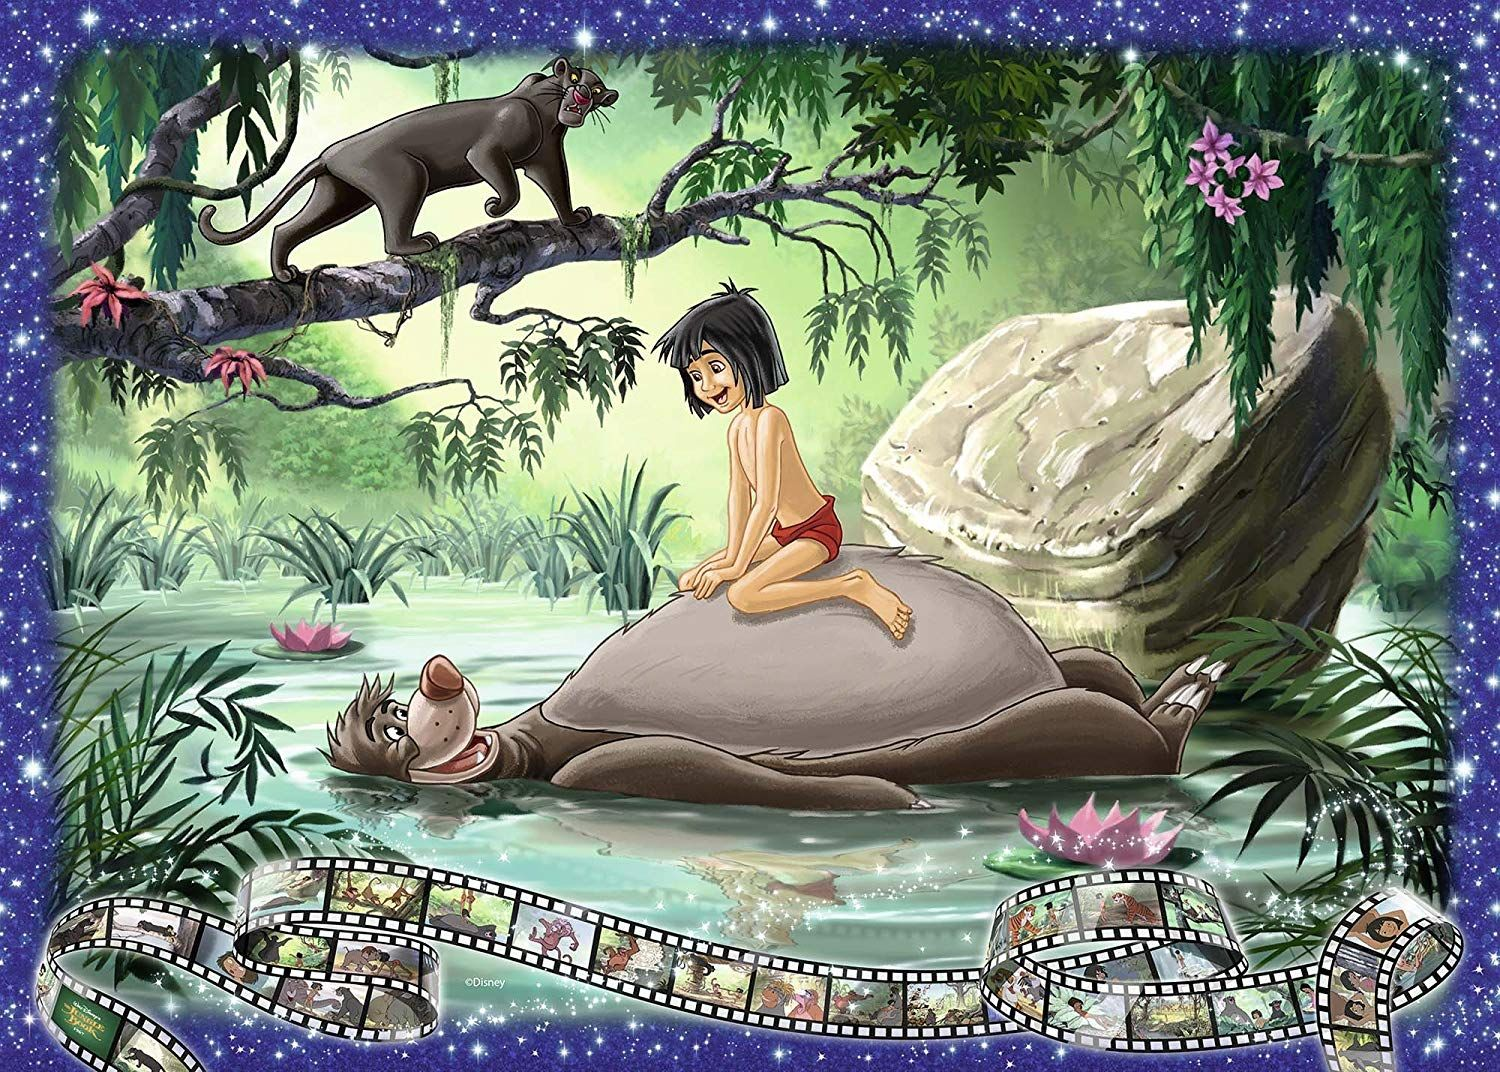 Ravensburger The Jungle Book 1000 Parçalık Puzzle